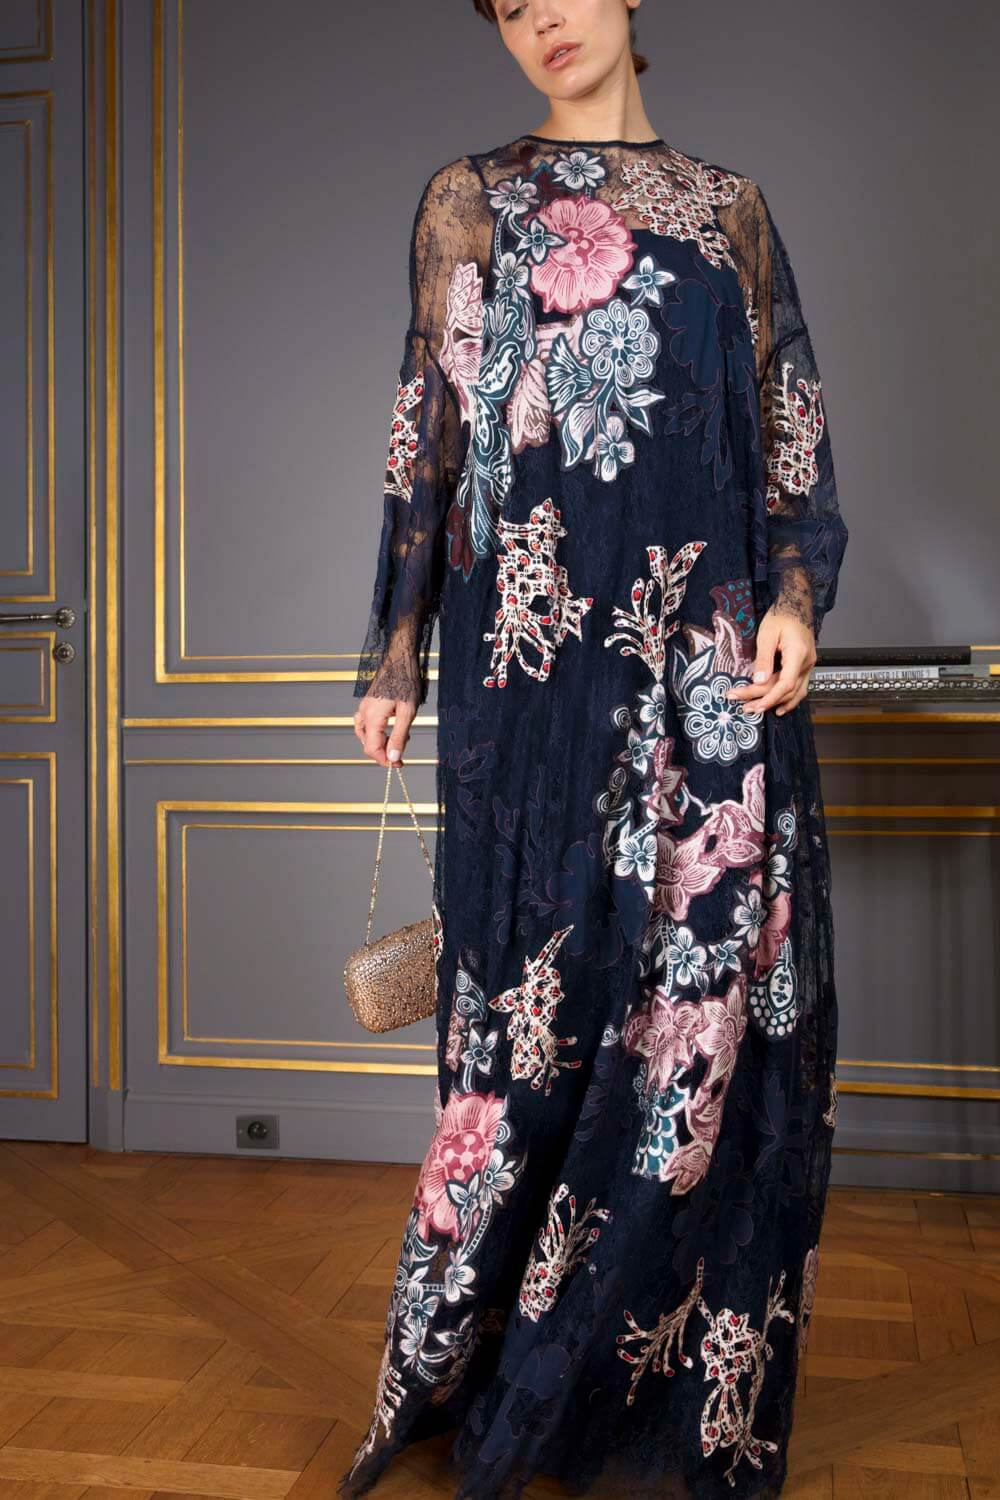 Midnight blue lace gown with pink and blue handcrafted appliqués